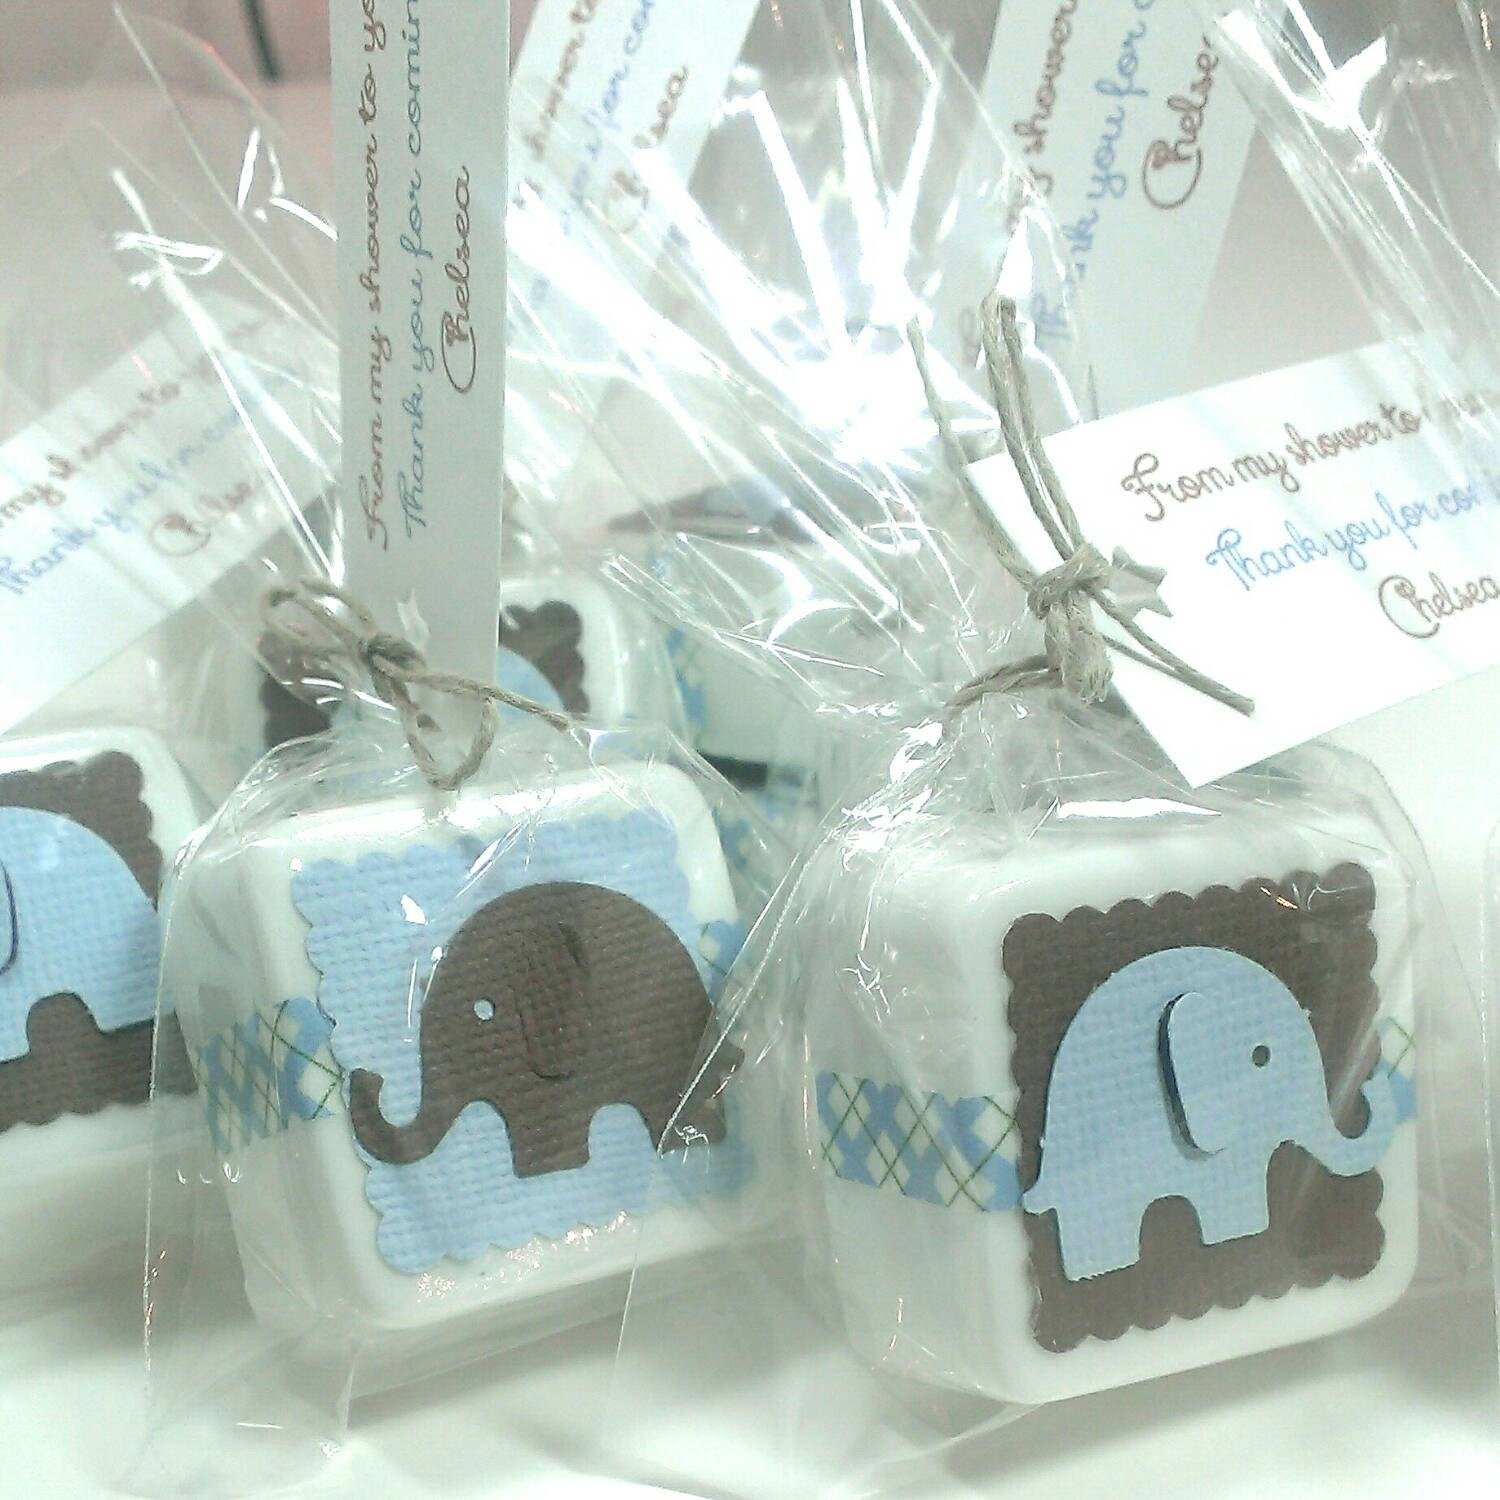 10 Ideal Favor Ideas For Baby Shower baby shower favor ideas baby ideas 9 2020